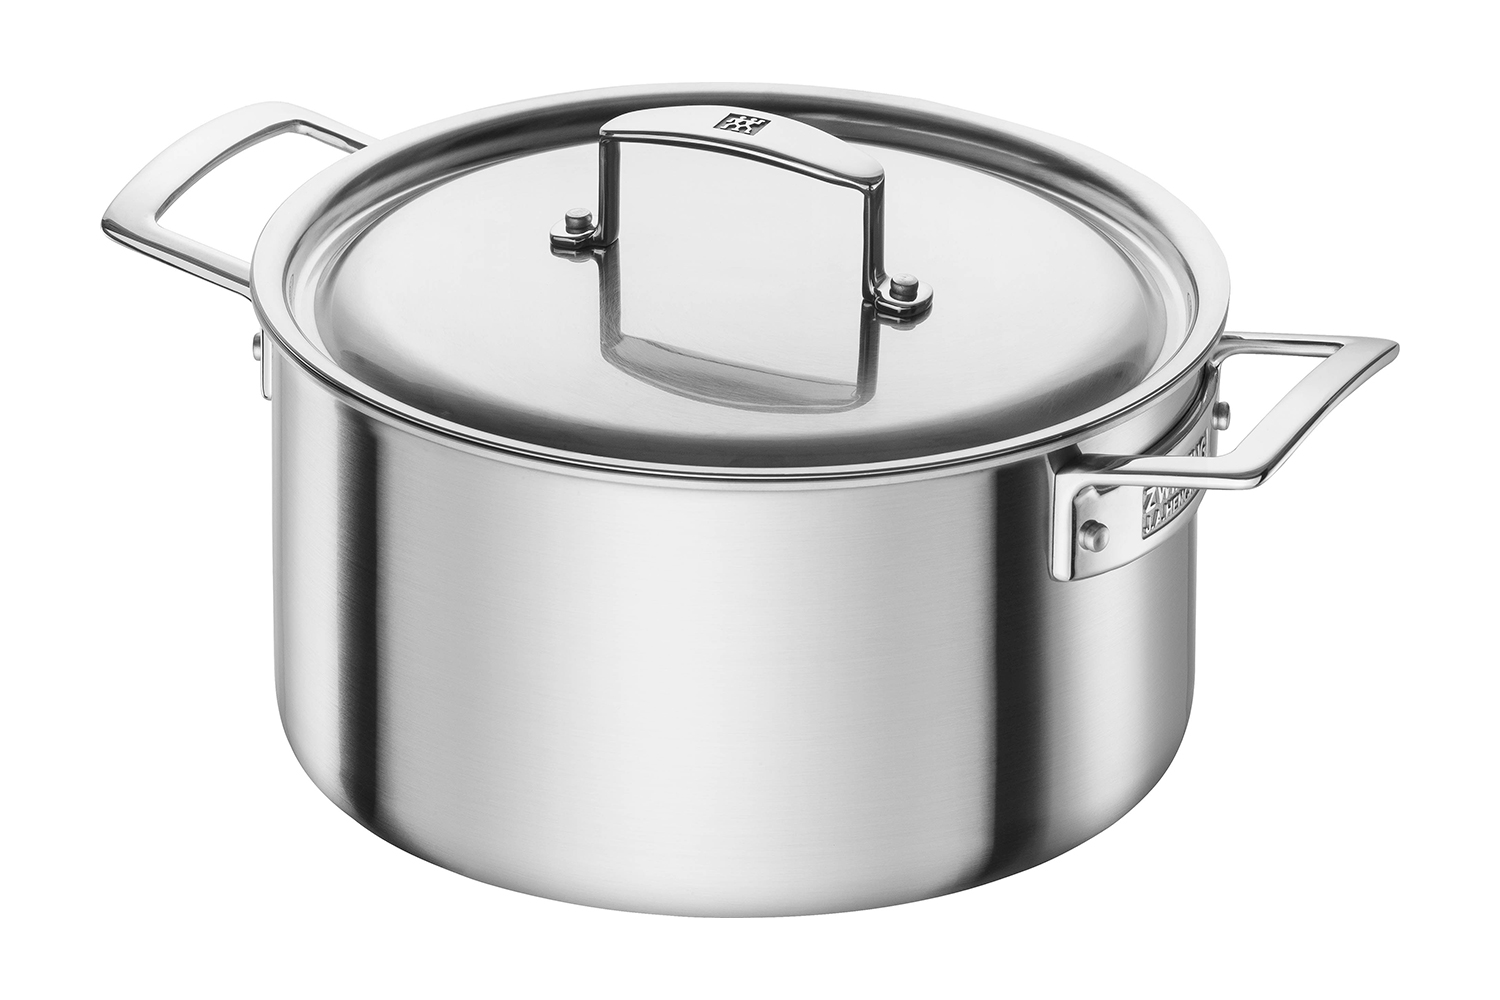 Zwilling J.A. Aurora 5-Ply Stainless Steel 5 1/2 qt. Dutch Oven w/Lid